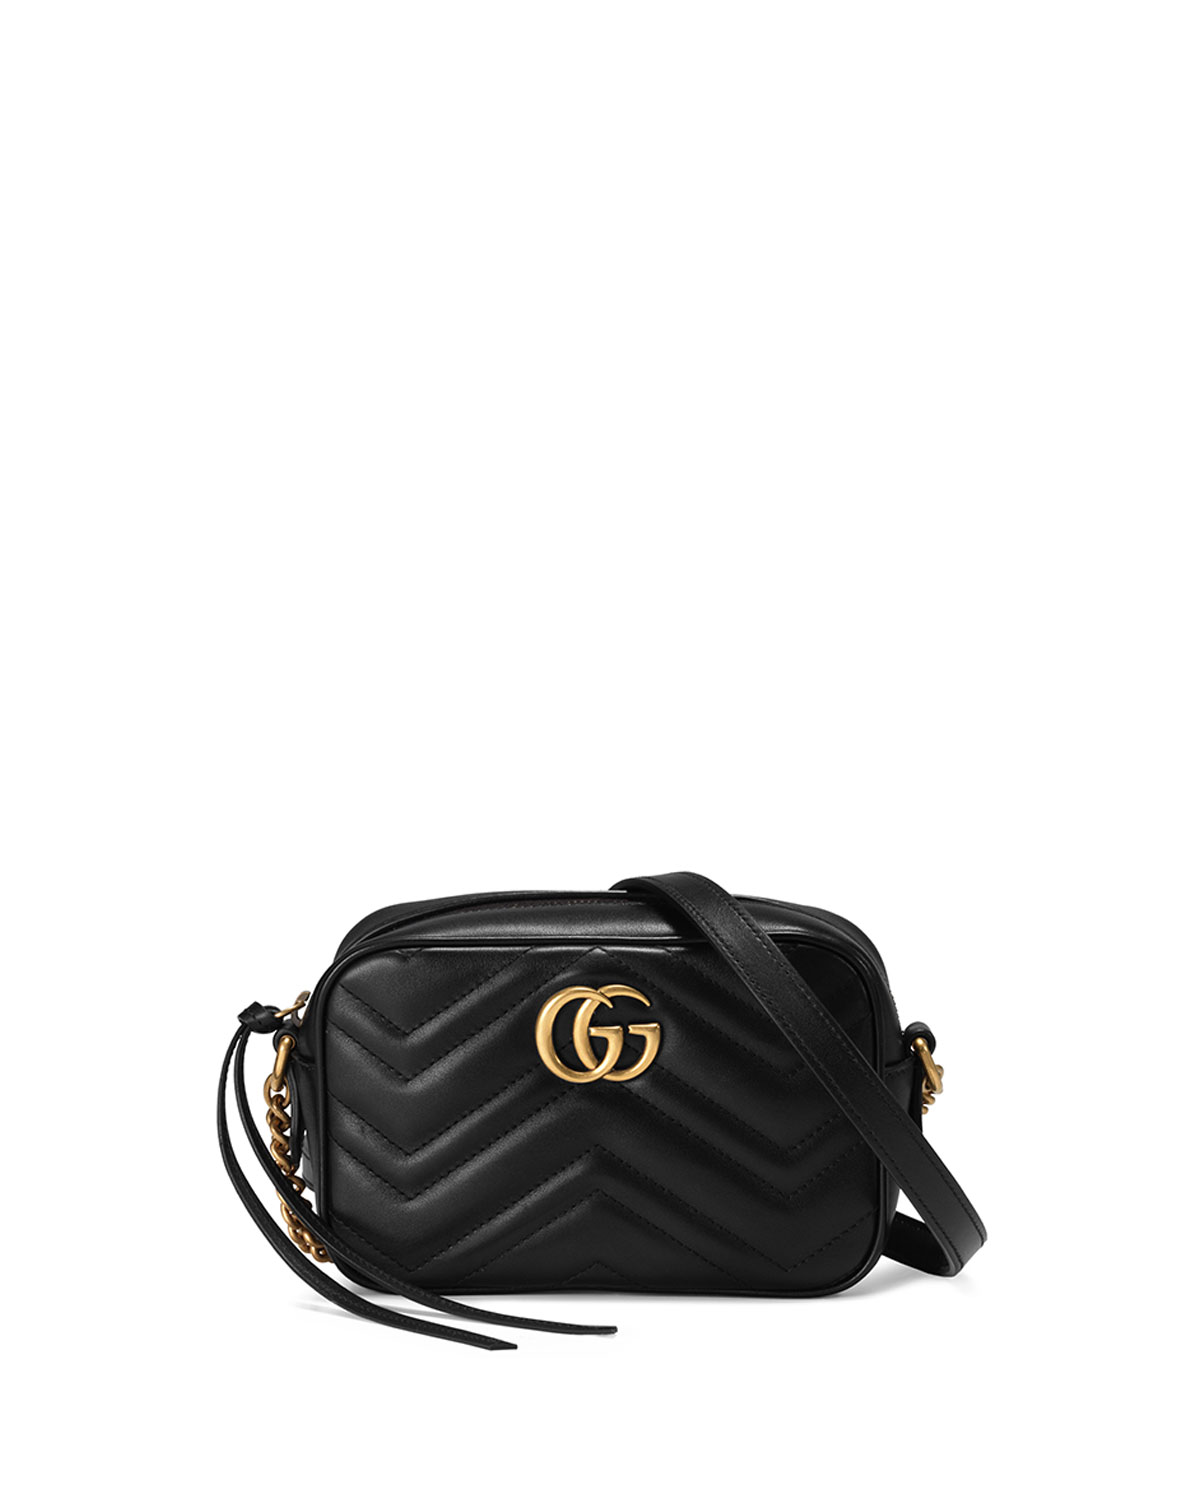 06441ab0b703 Gucci GG Marmont Mini Matelasse Camera Bag, Black | Neiman Marcus